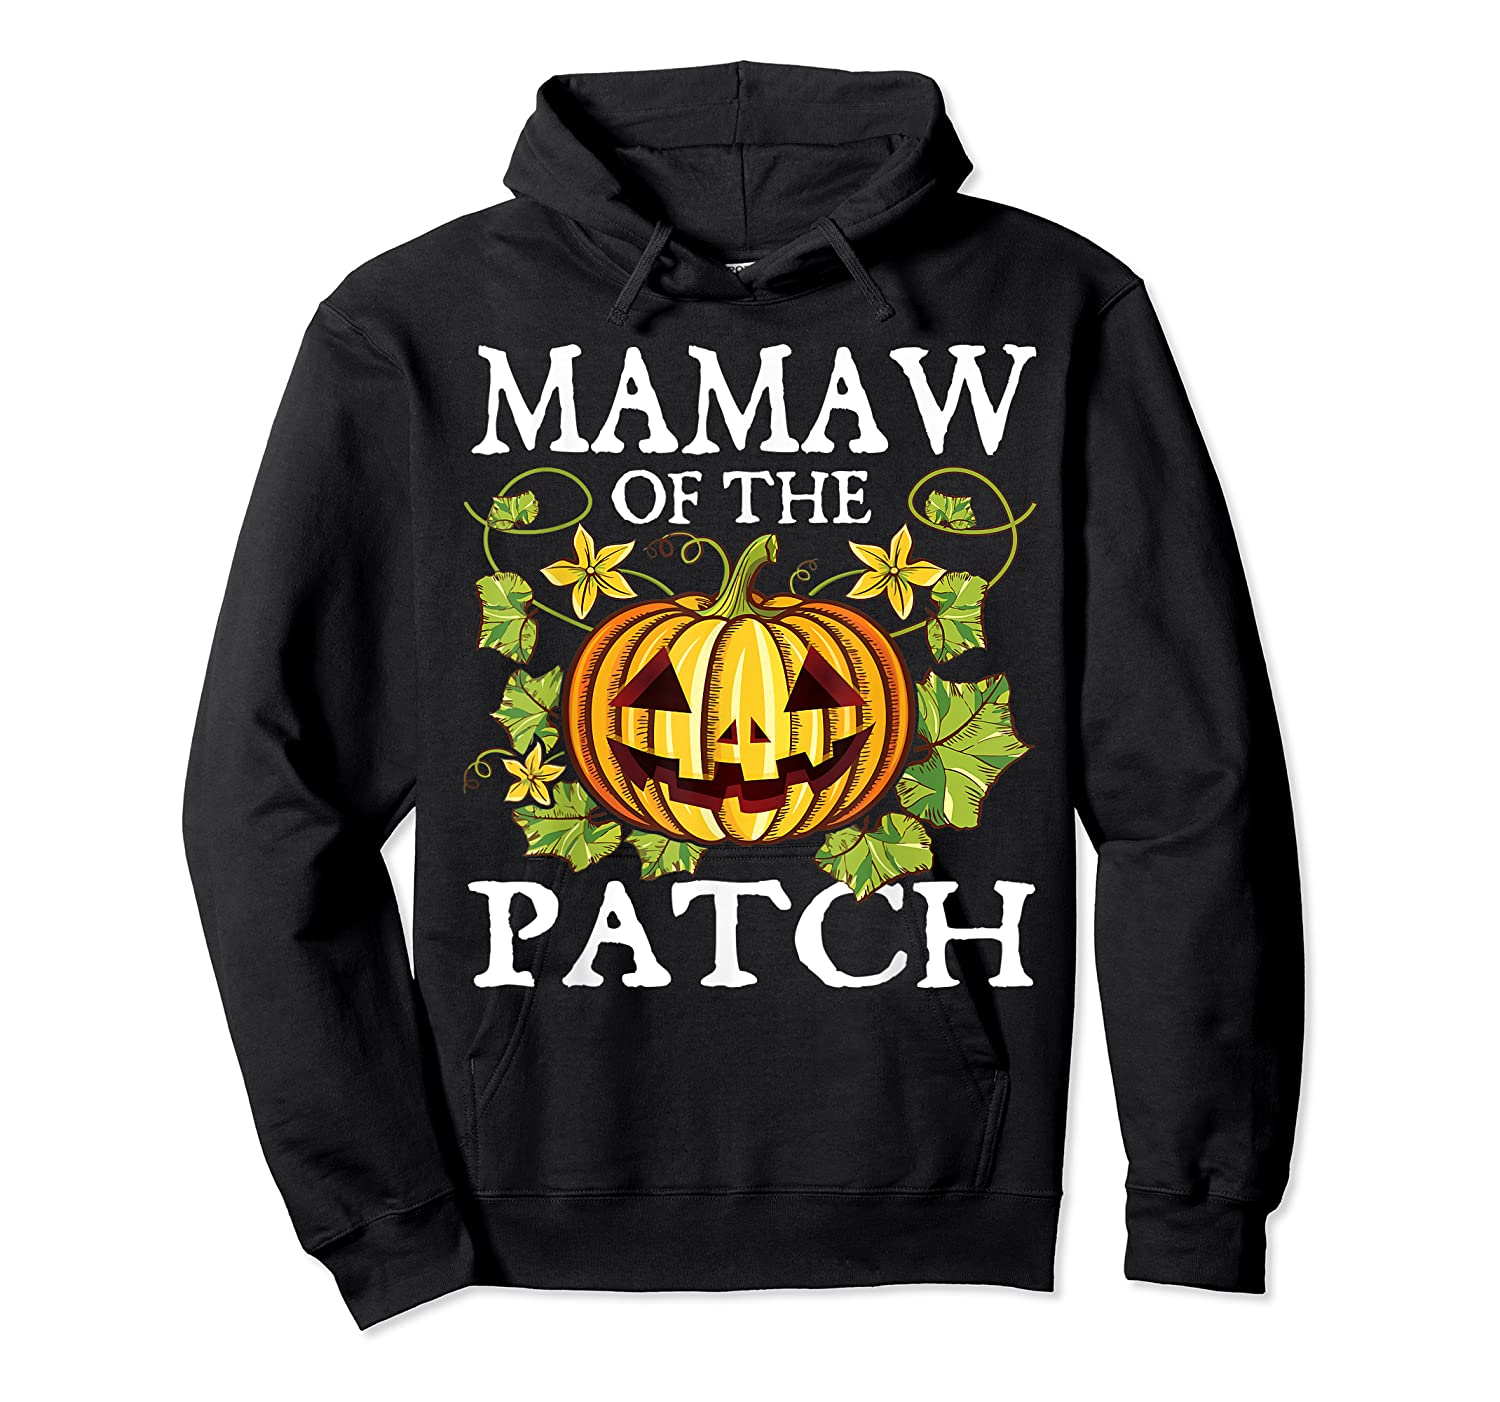 Mamaw Of The Patch Pumpkin Halloween Costume Gift Shirts Unisex Pullover Hoodie